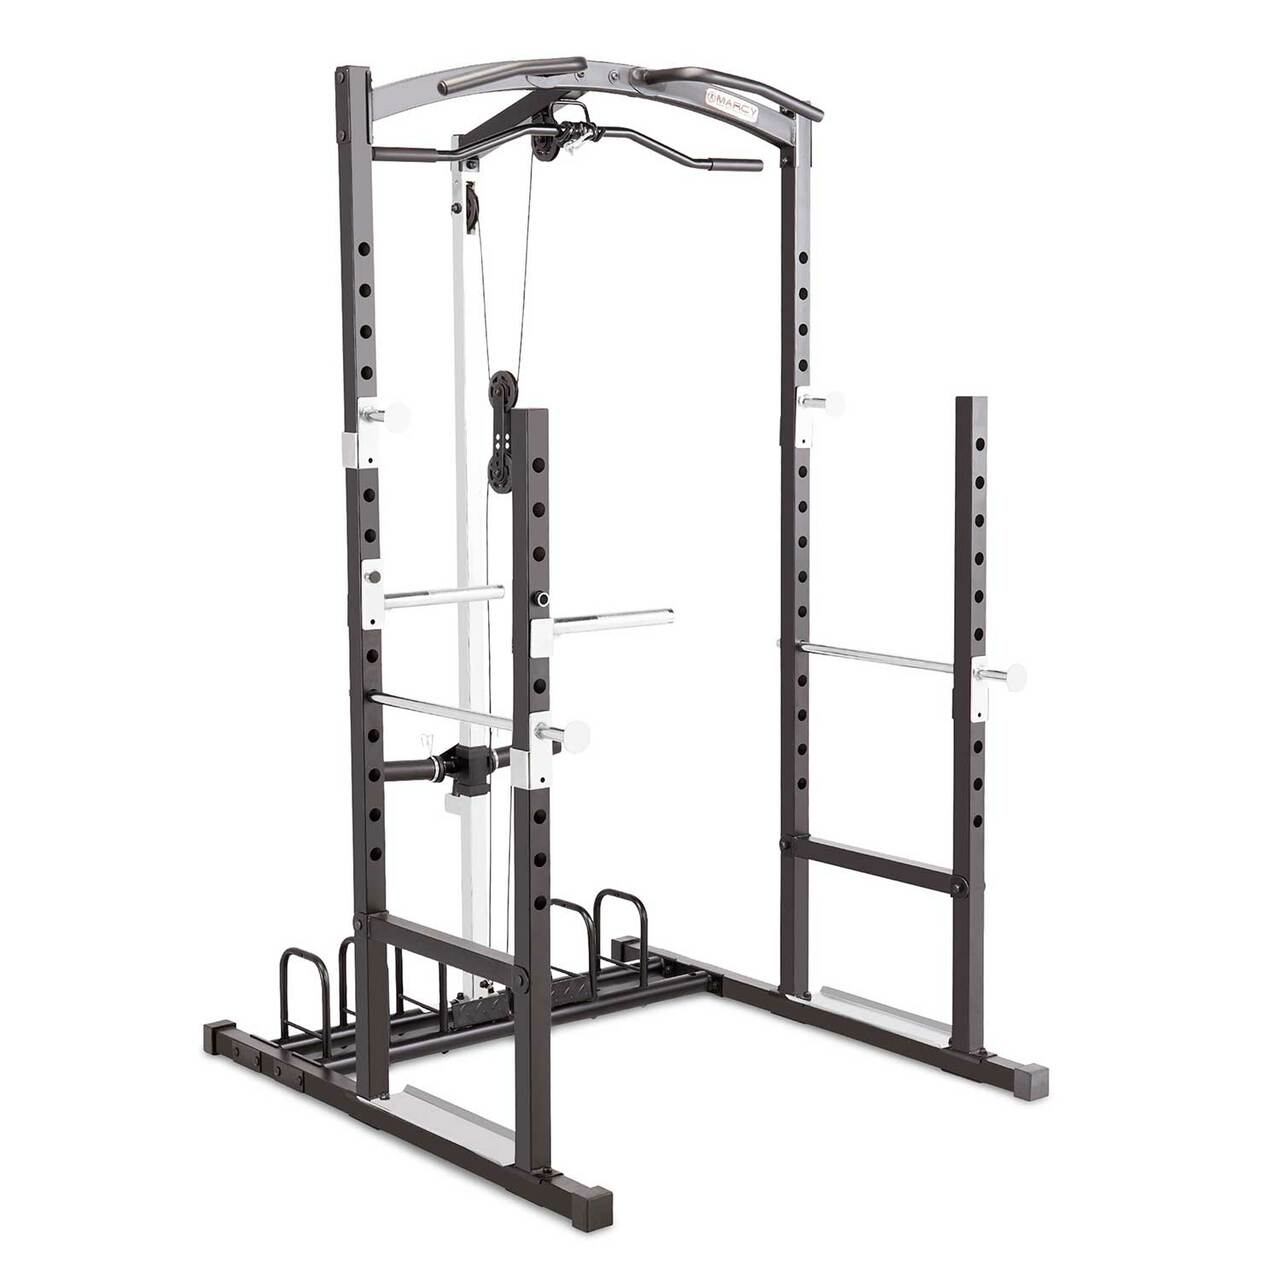 The Marcy Cage Home Gym MWM-7041 is essential to create the best home gym - Weights not included